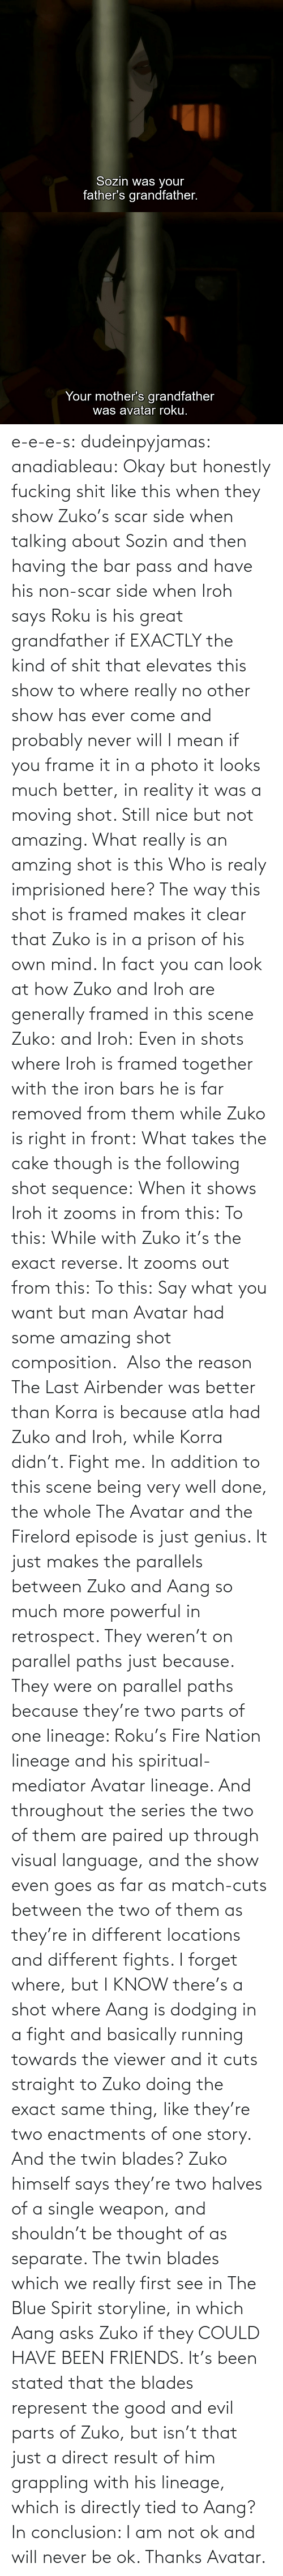 Evil: e-e-e-s: dudeinpyjamas:   anadiableau: Okay but honestly fucking shit like this when they show Zuko's scar side when talking about Sozin and then having the bar pass and have his non-scar side when Iroh says Roku is his great grandfather if EXACTLY the kind of shit that elevates this show to where really no other show has ever come and probably never will I mean if you frame it in a photo it looks much better, in reality it was a moving shot. Still nice but not amazing. What really is an amzing shot is this Who is realy imprisioned here? The way this shot is framed makes it clear that Zuko is in a prison of his own mind. In fact you can look at how Zuko and Iroh are generally framed in this scene Zuko: and Iroh: Even in shots where Iroh is framed together with the iron bars he is far removed from them while Zuko is right in front:  What takes the cake though is the following shot sequence: When it shows Iroh it zooms in from this: To this: While with Zuko it's the exact reverse. It zooms out from this: To this: Say what you want but man Avatar had some amazing shot composition.   Also the reason The Last Airbender was better than Korra is because atla had Zuko and Iroh, while Korra didn't. Fight me.    In addition to this scene being very well done, the whole The Avatar and the Firelord episode is just genius.  It just makes the parallels between Zuko and Aang so much more powerful in retrospect.  They weren't on parallel paths just because.  They were on parallel paths because they're two parts of one lineage: Roku's Fire Nation lineage and his spiritual-mediator Avatar lineage.  And throughout the series the two of them are paired up through visual language, and the show even goes as far as match-cuts between the two of them as they're in different locations and different fights.  I forget where, but I KNOW there's a shot where Aang is dodging in a fight and basically running towards the viewer and it cuts straight to Zuko doing the exact same thing, like they're two enactments of one story.   And the twin blades?  Zuko himself says they're two halves of a single weapon, and shouldn't be thought of as separate.  The twin blades which we really first see in The Blue Spirit storyline, in which Aang asks Zuko if they COULD HAVE BEEN FRIENDS.  It's been stated that the blades represent the good and evil parts of Zuko, but isn't that just a direct result of him grappling with his lineage, which is directly tied to Aang? In conclusion: I am not ok and will never be ok.  Thanks Avatar.